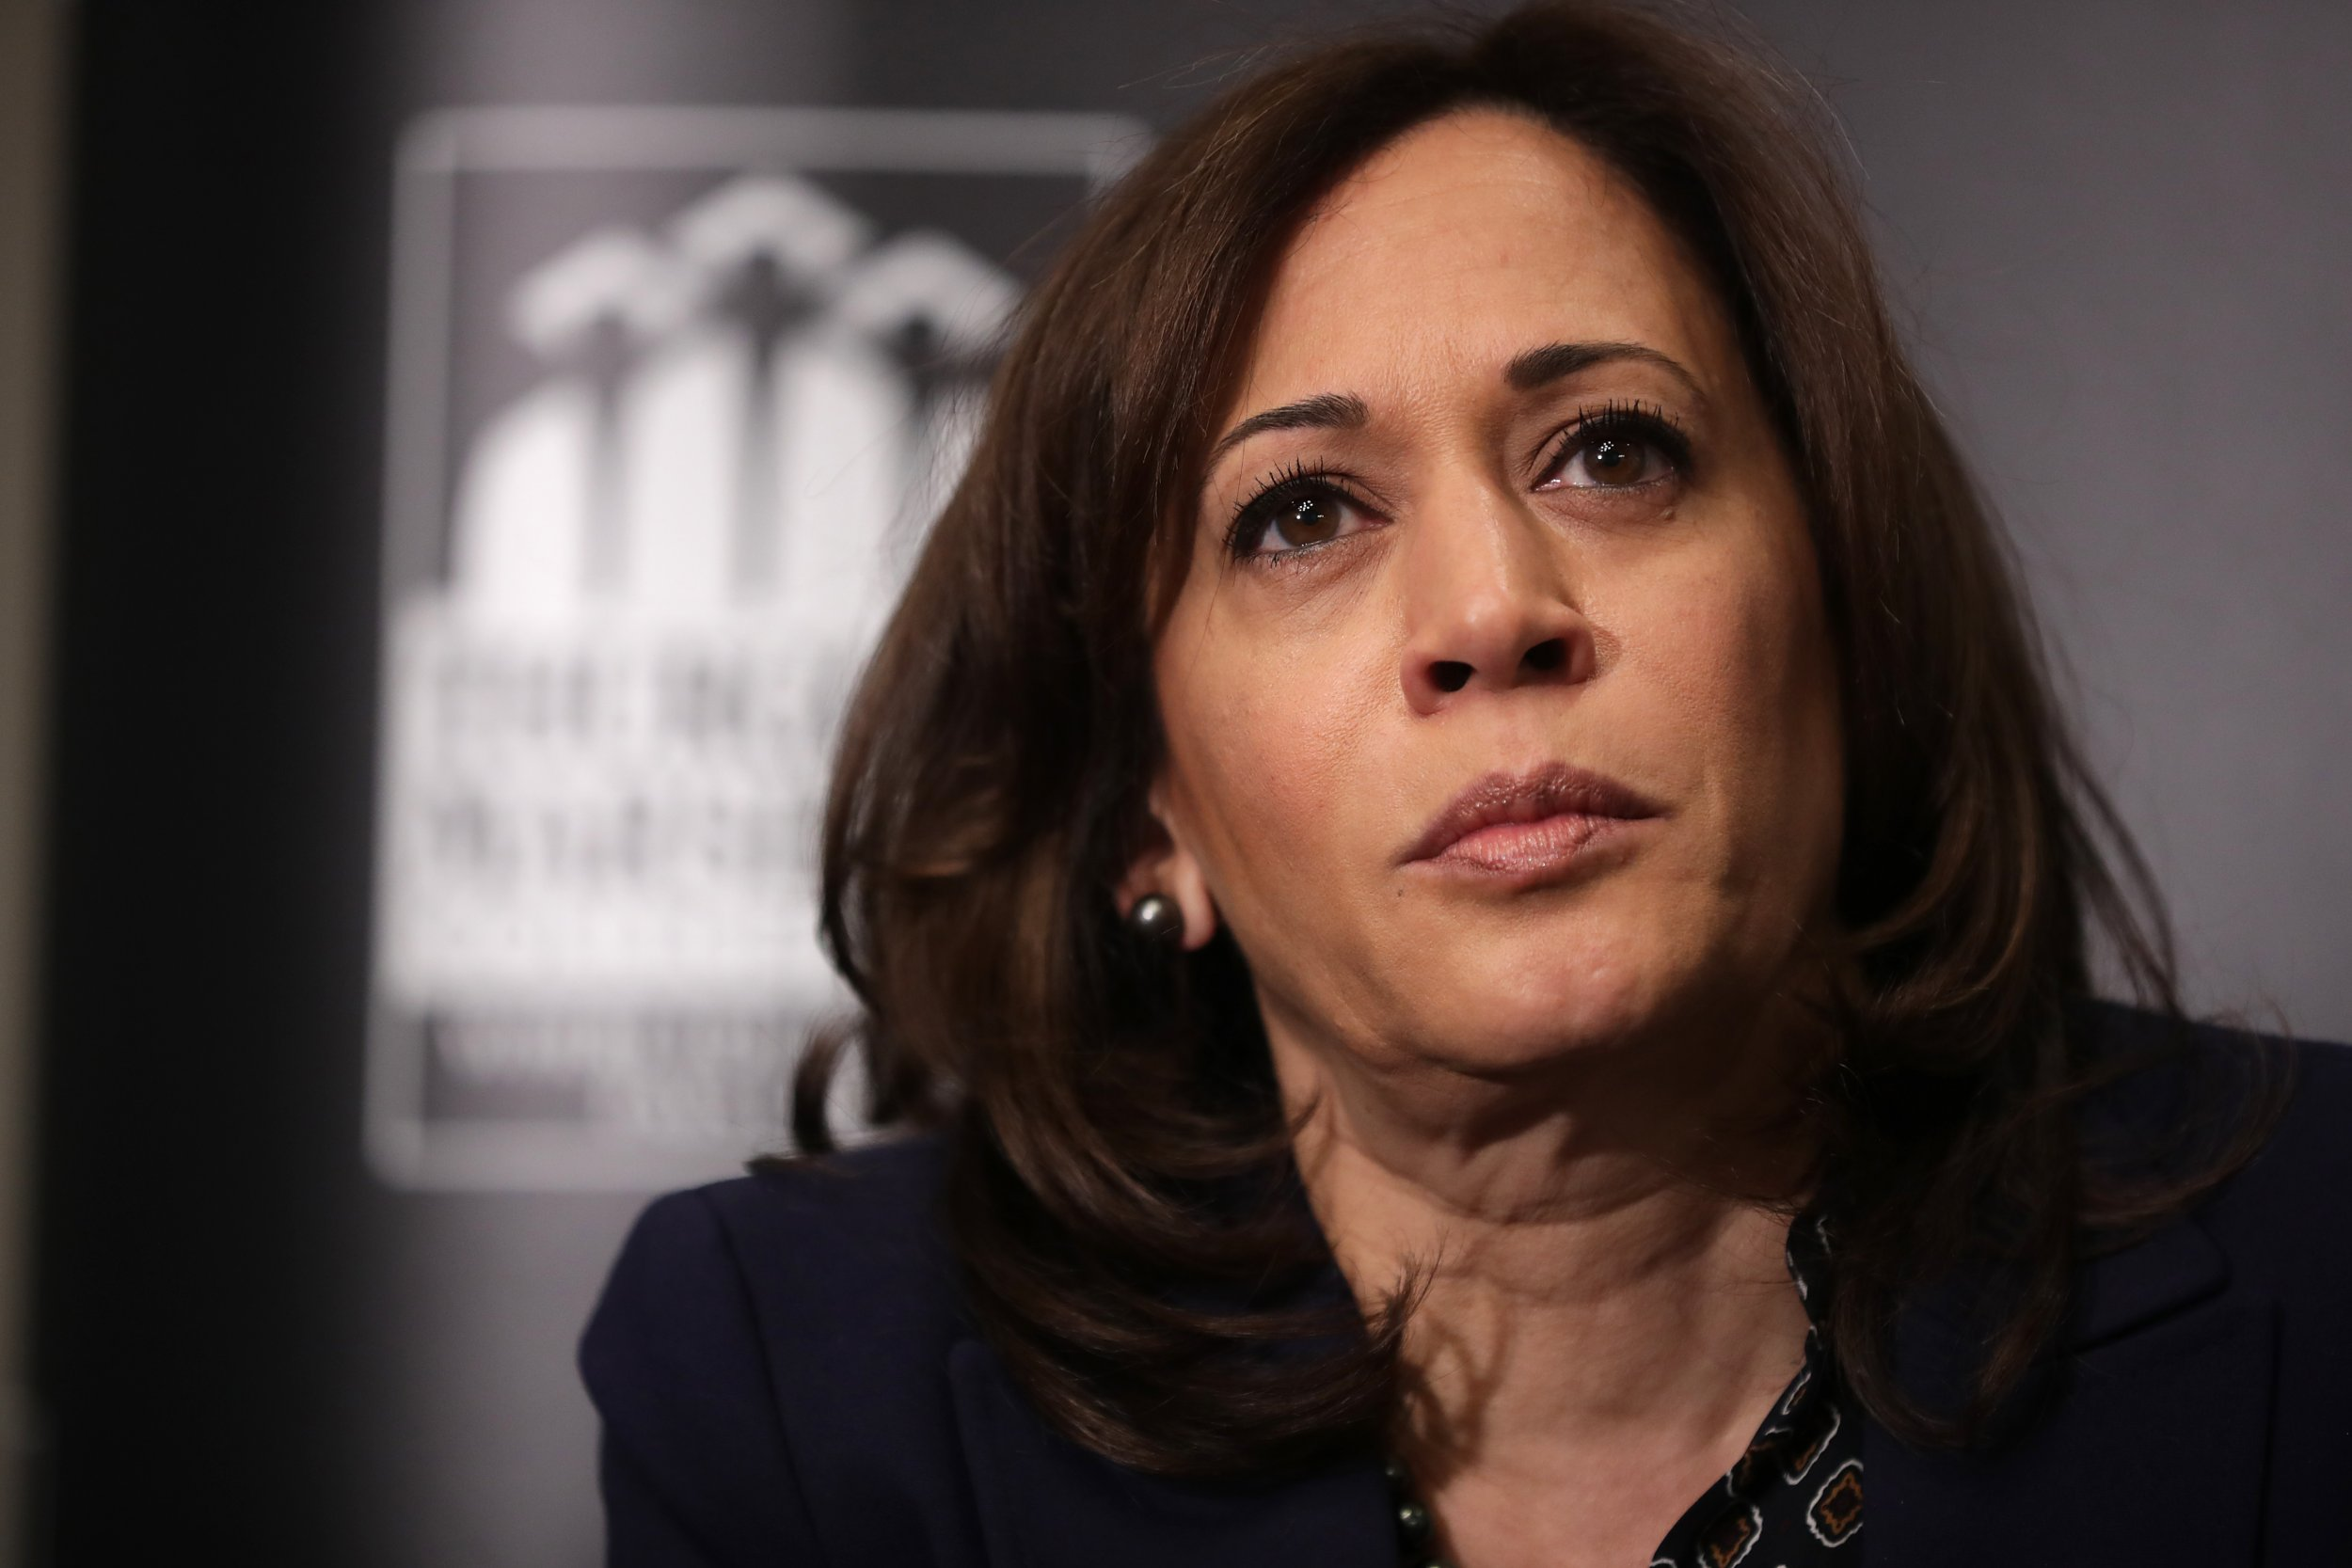 Kamala Harris S Father Slams Her For Fraudulently Stereotyping Jamaicans With Pot Comments Accuses Her Of Pursuing Identity Politics Report